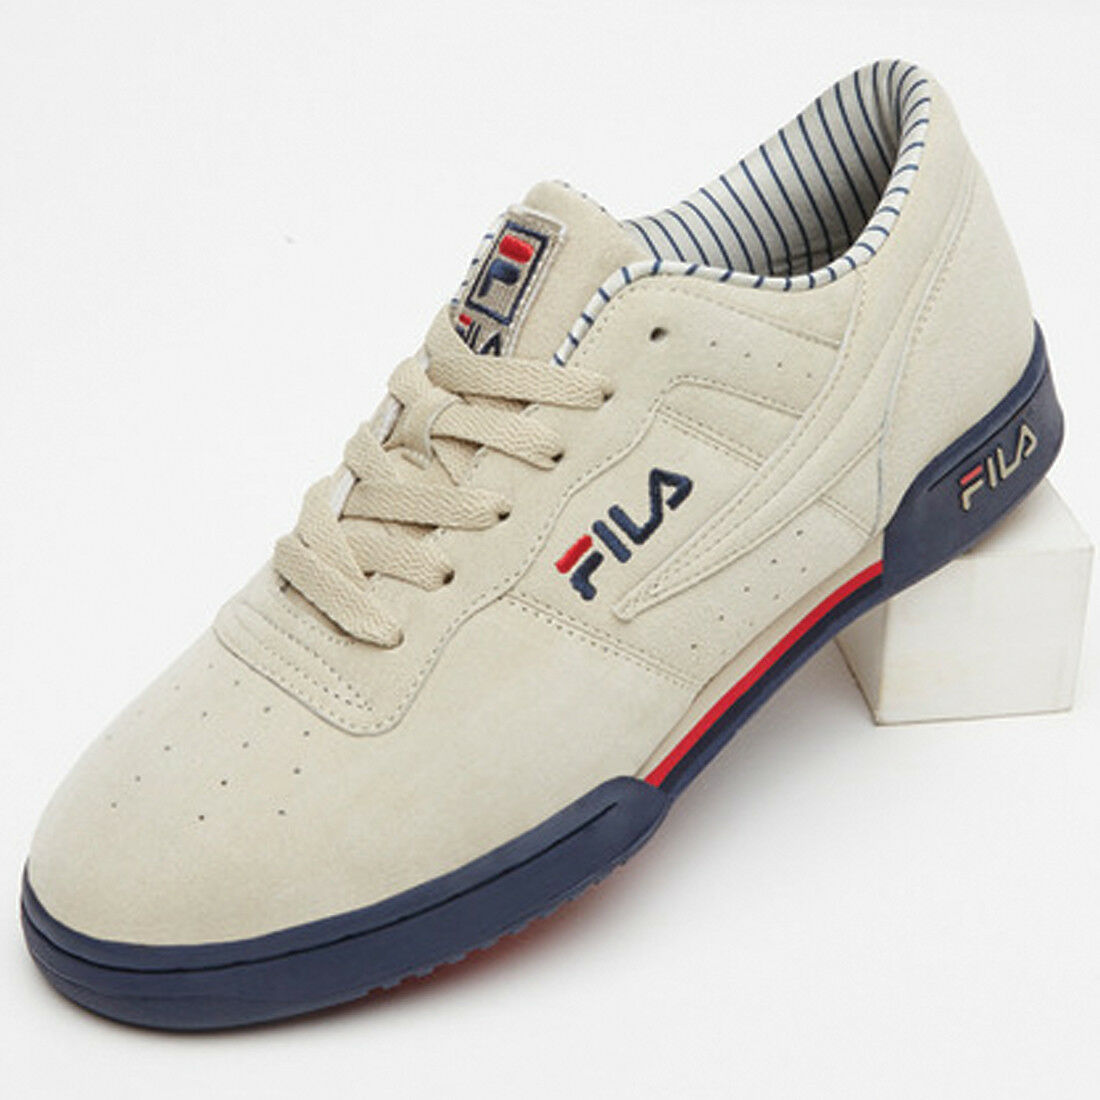 New authentic Hombre fila original Casual Fitness Pinstripe 1vf80127-922 Wild Casual original Shoes 5f9a66